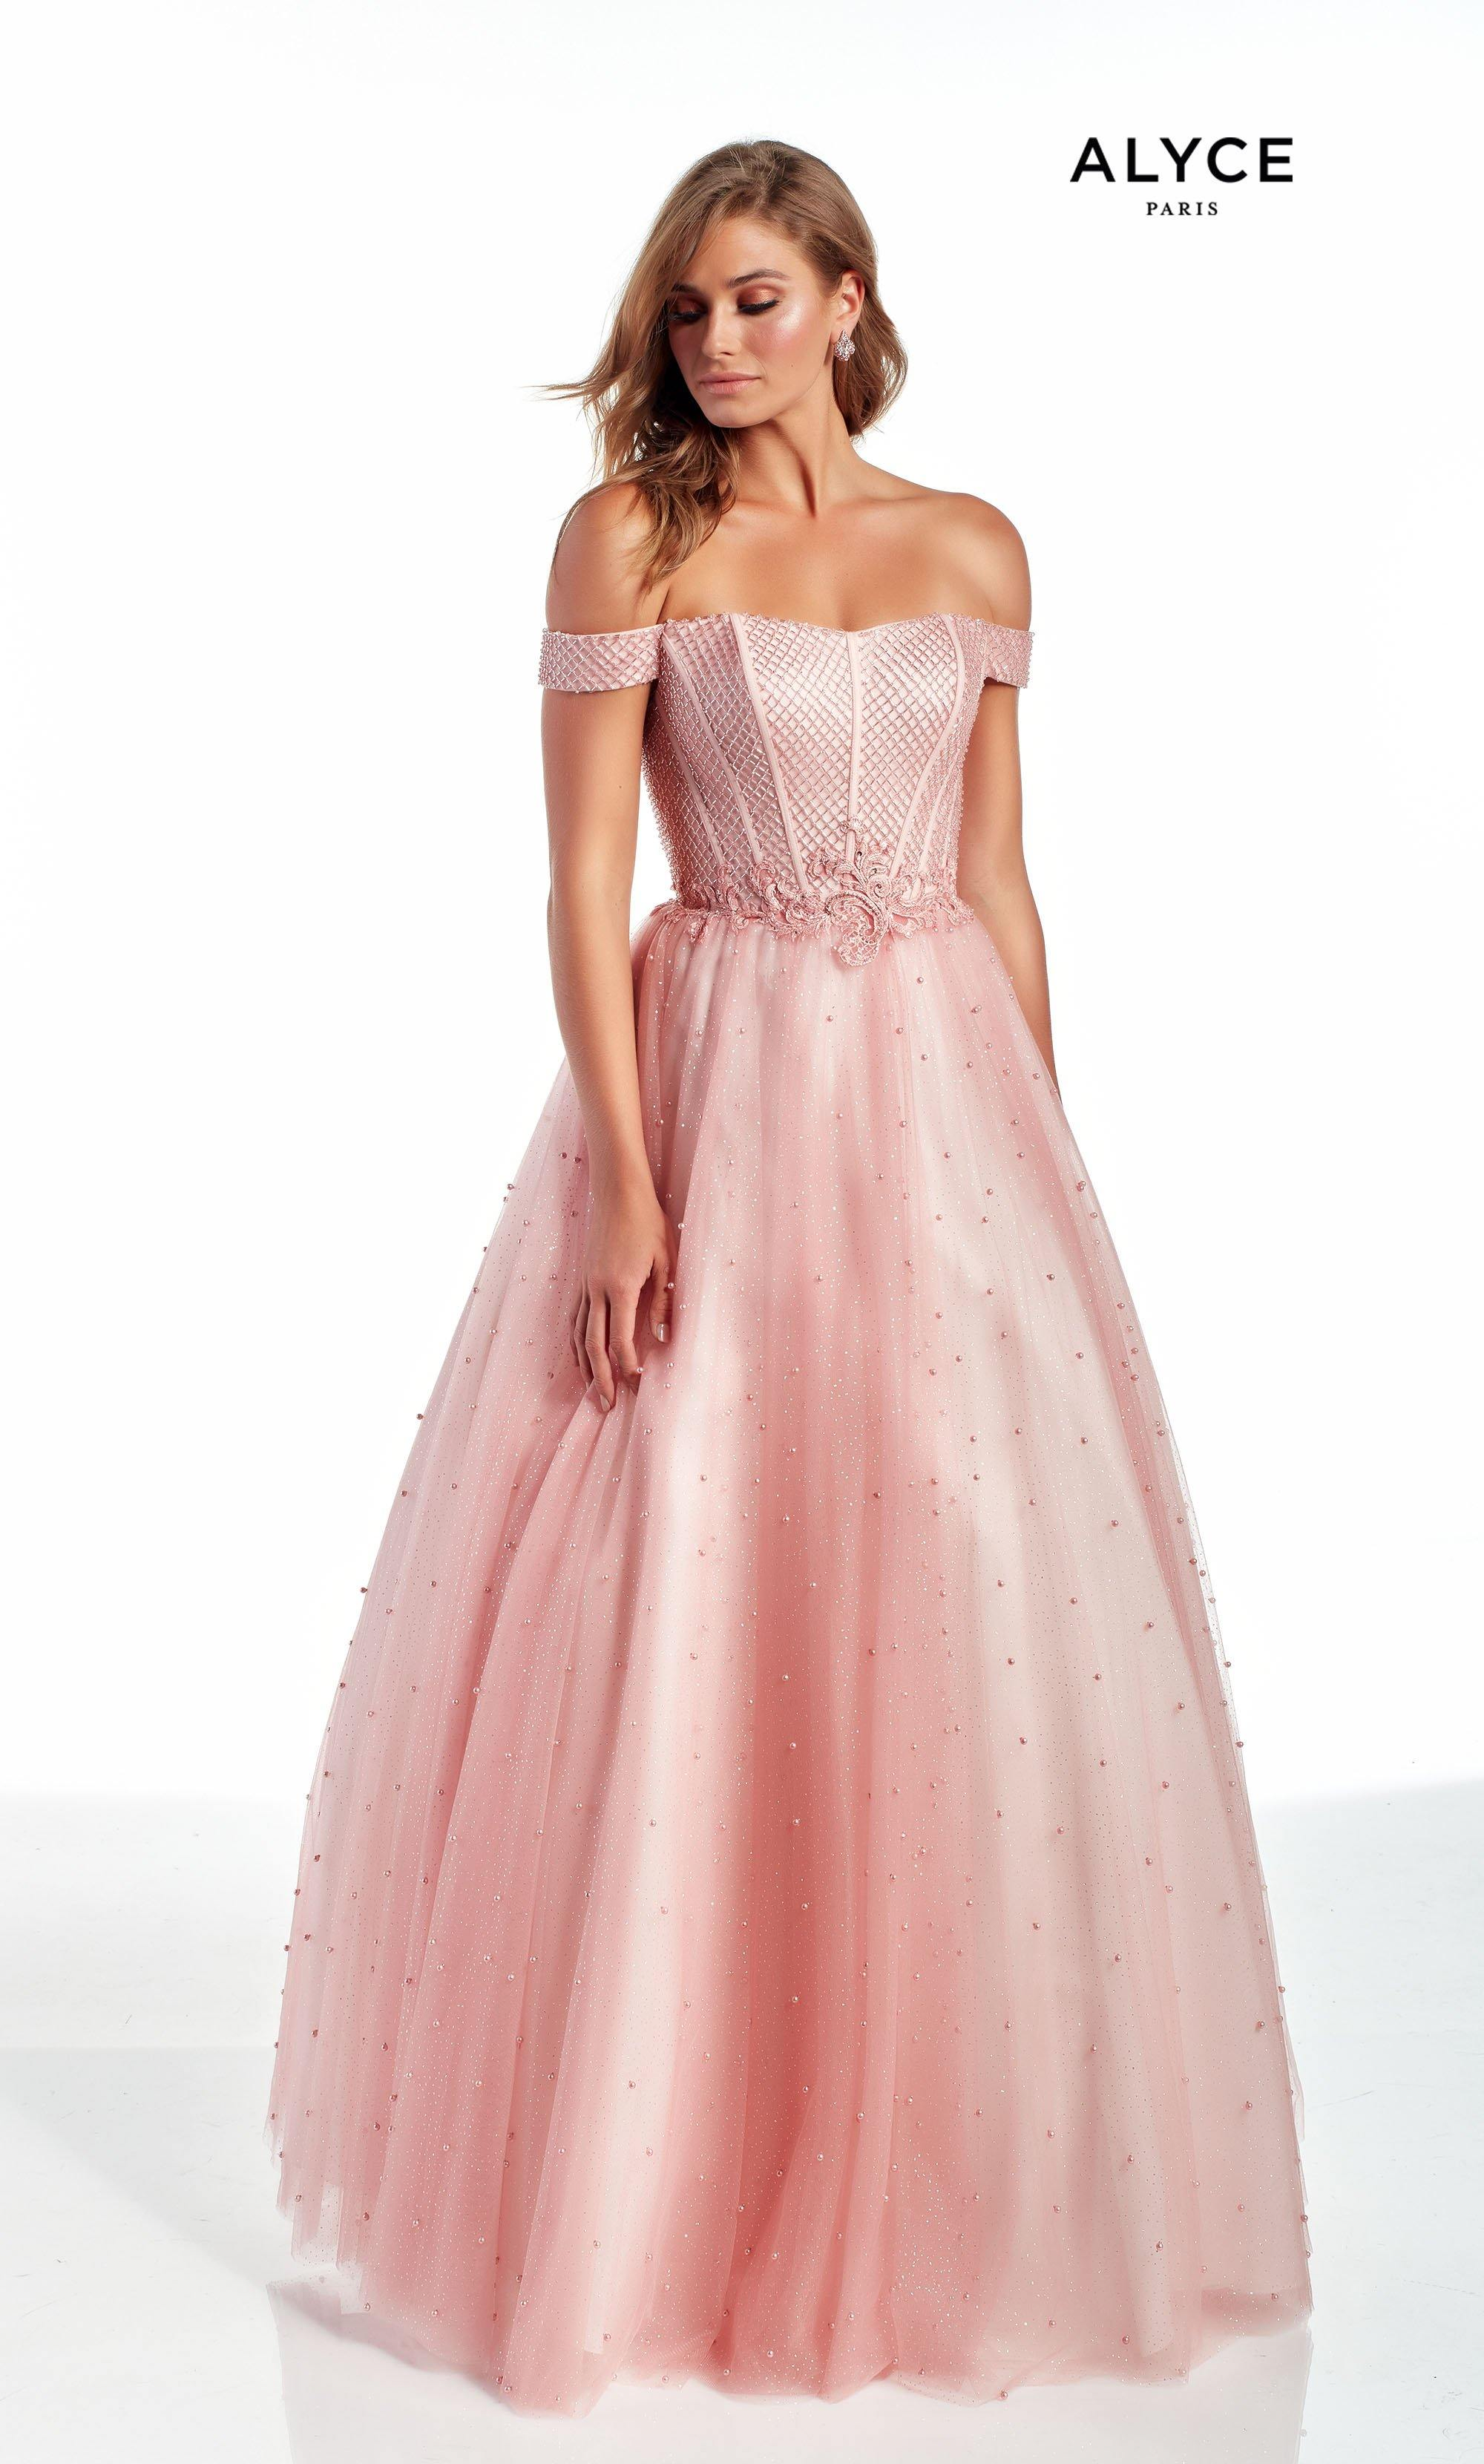 Blush Pink bead and pearl embellished off the shoulder ballgown with an embroidered natural waist